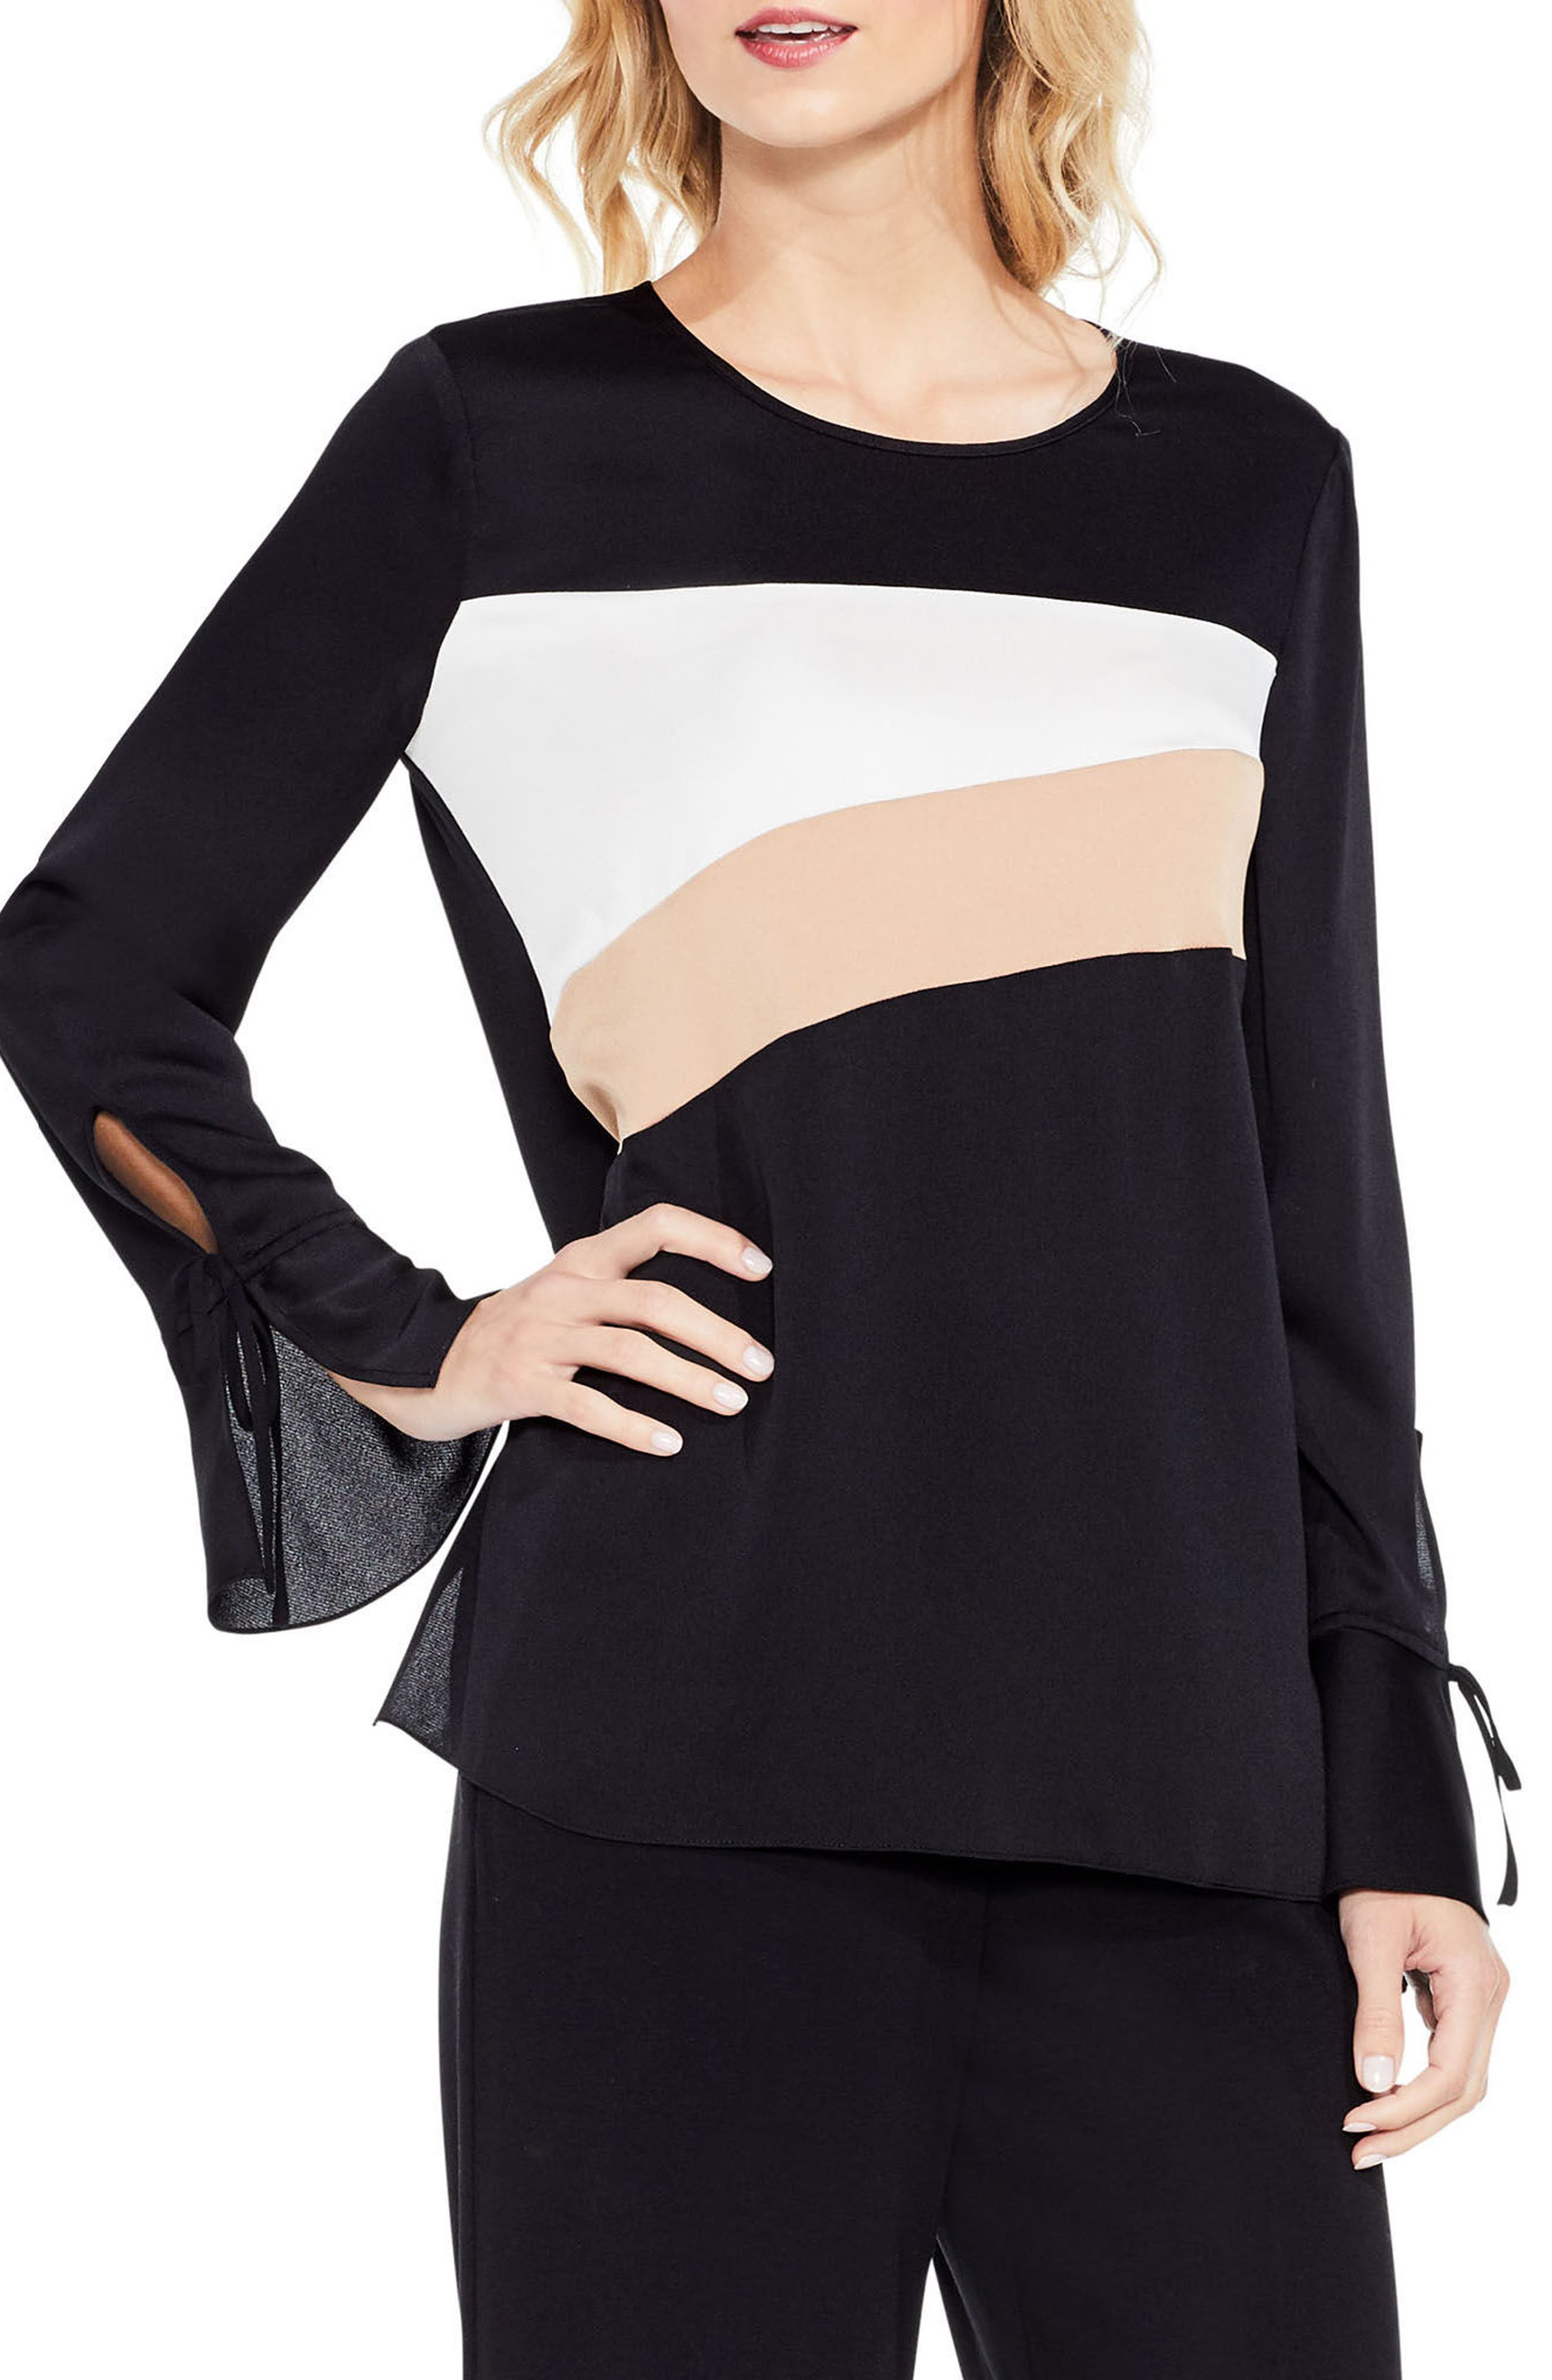 Main Image - Vince Camuto Bell Sleeve Colorblock Top